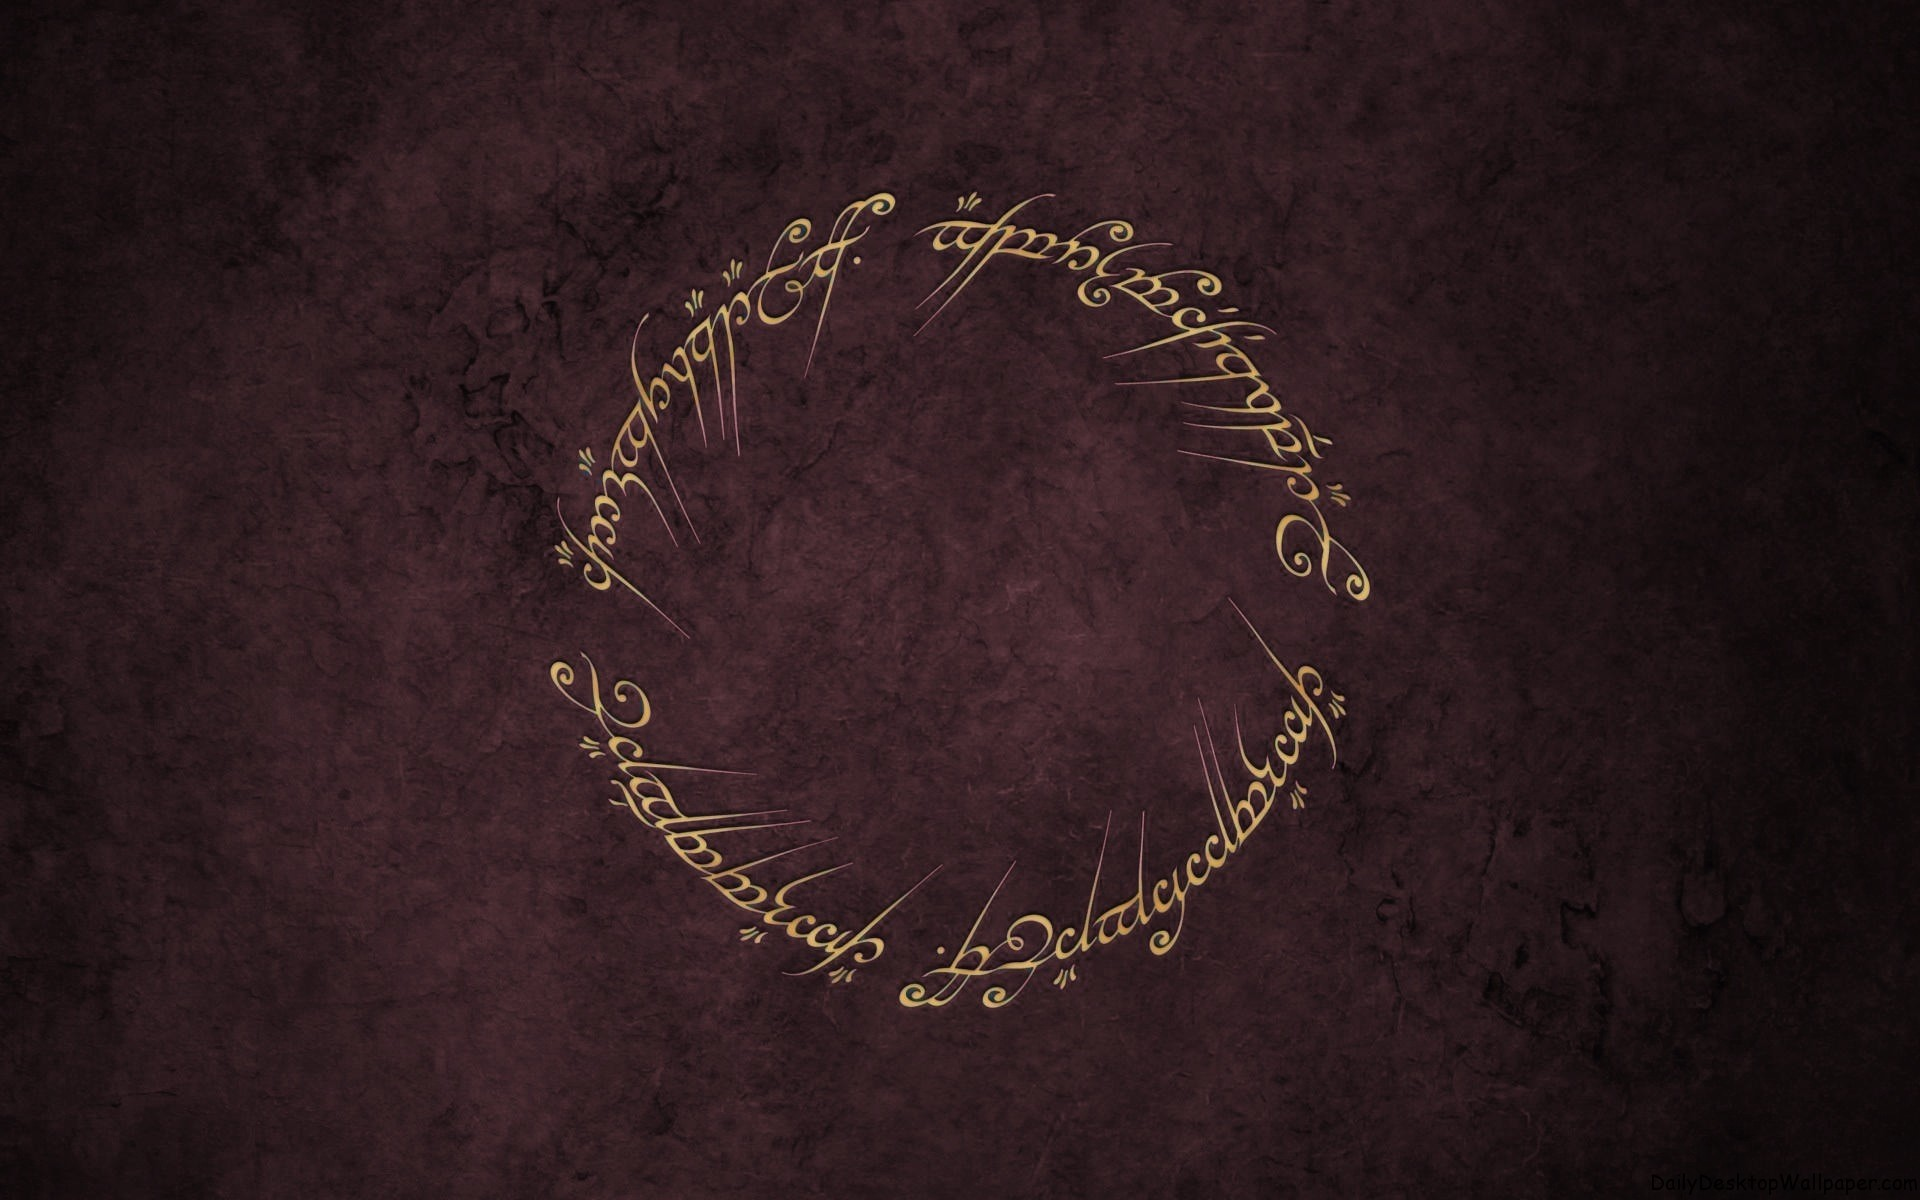 The Elvish inscription from JRR Tolkein's Lord of the Rings